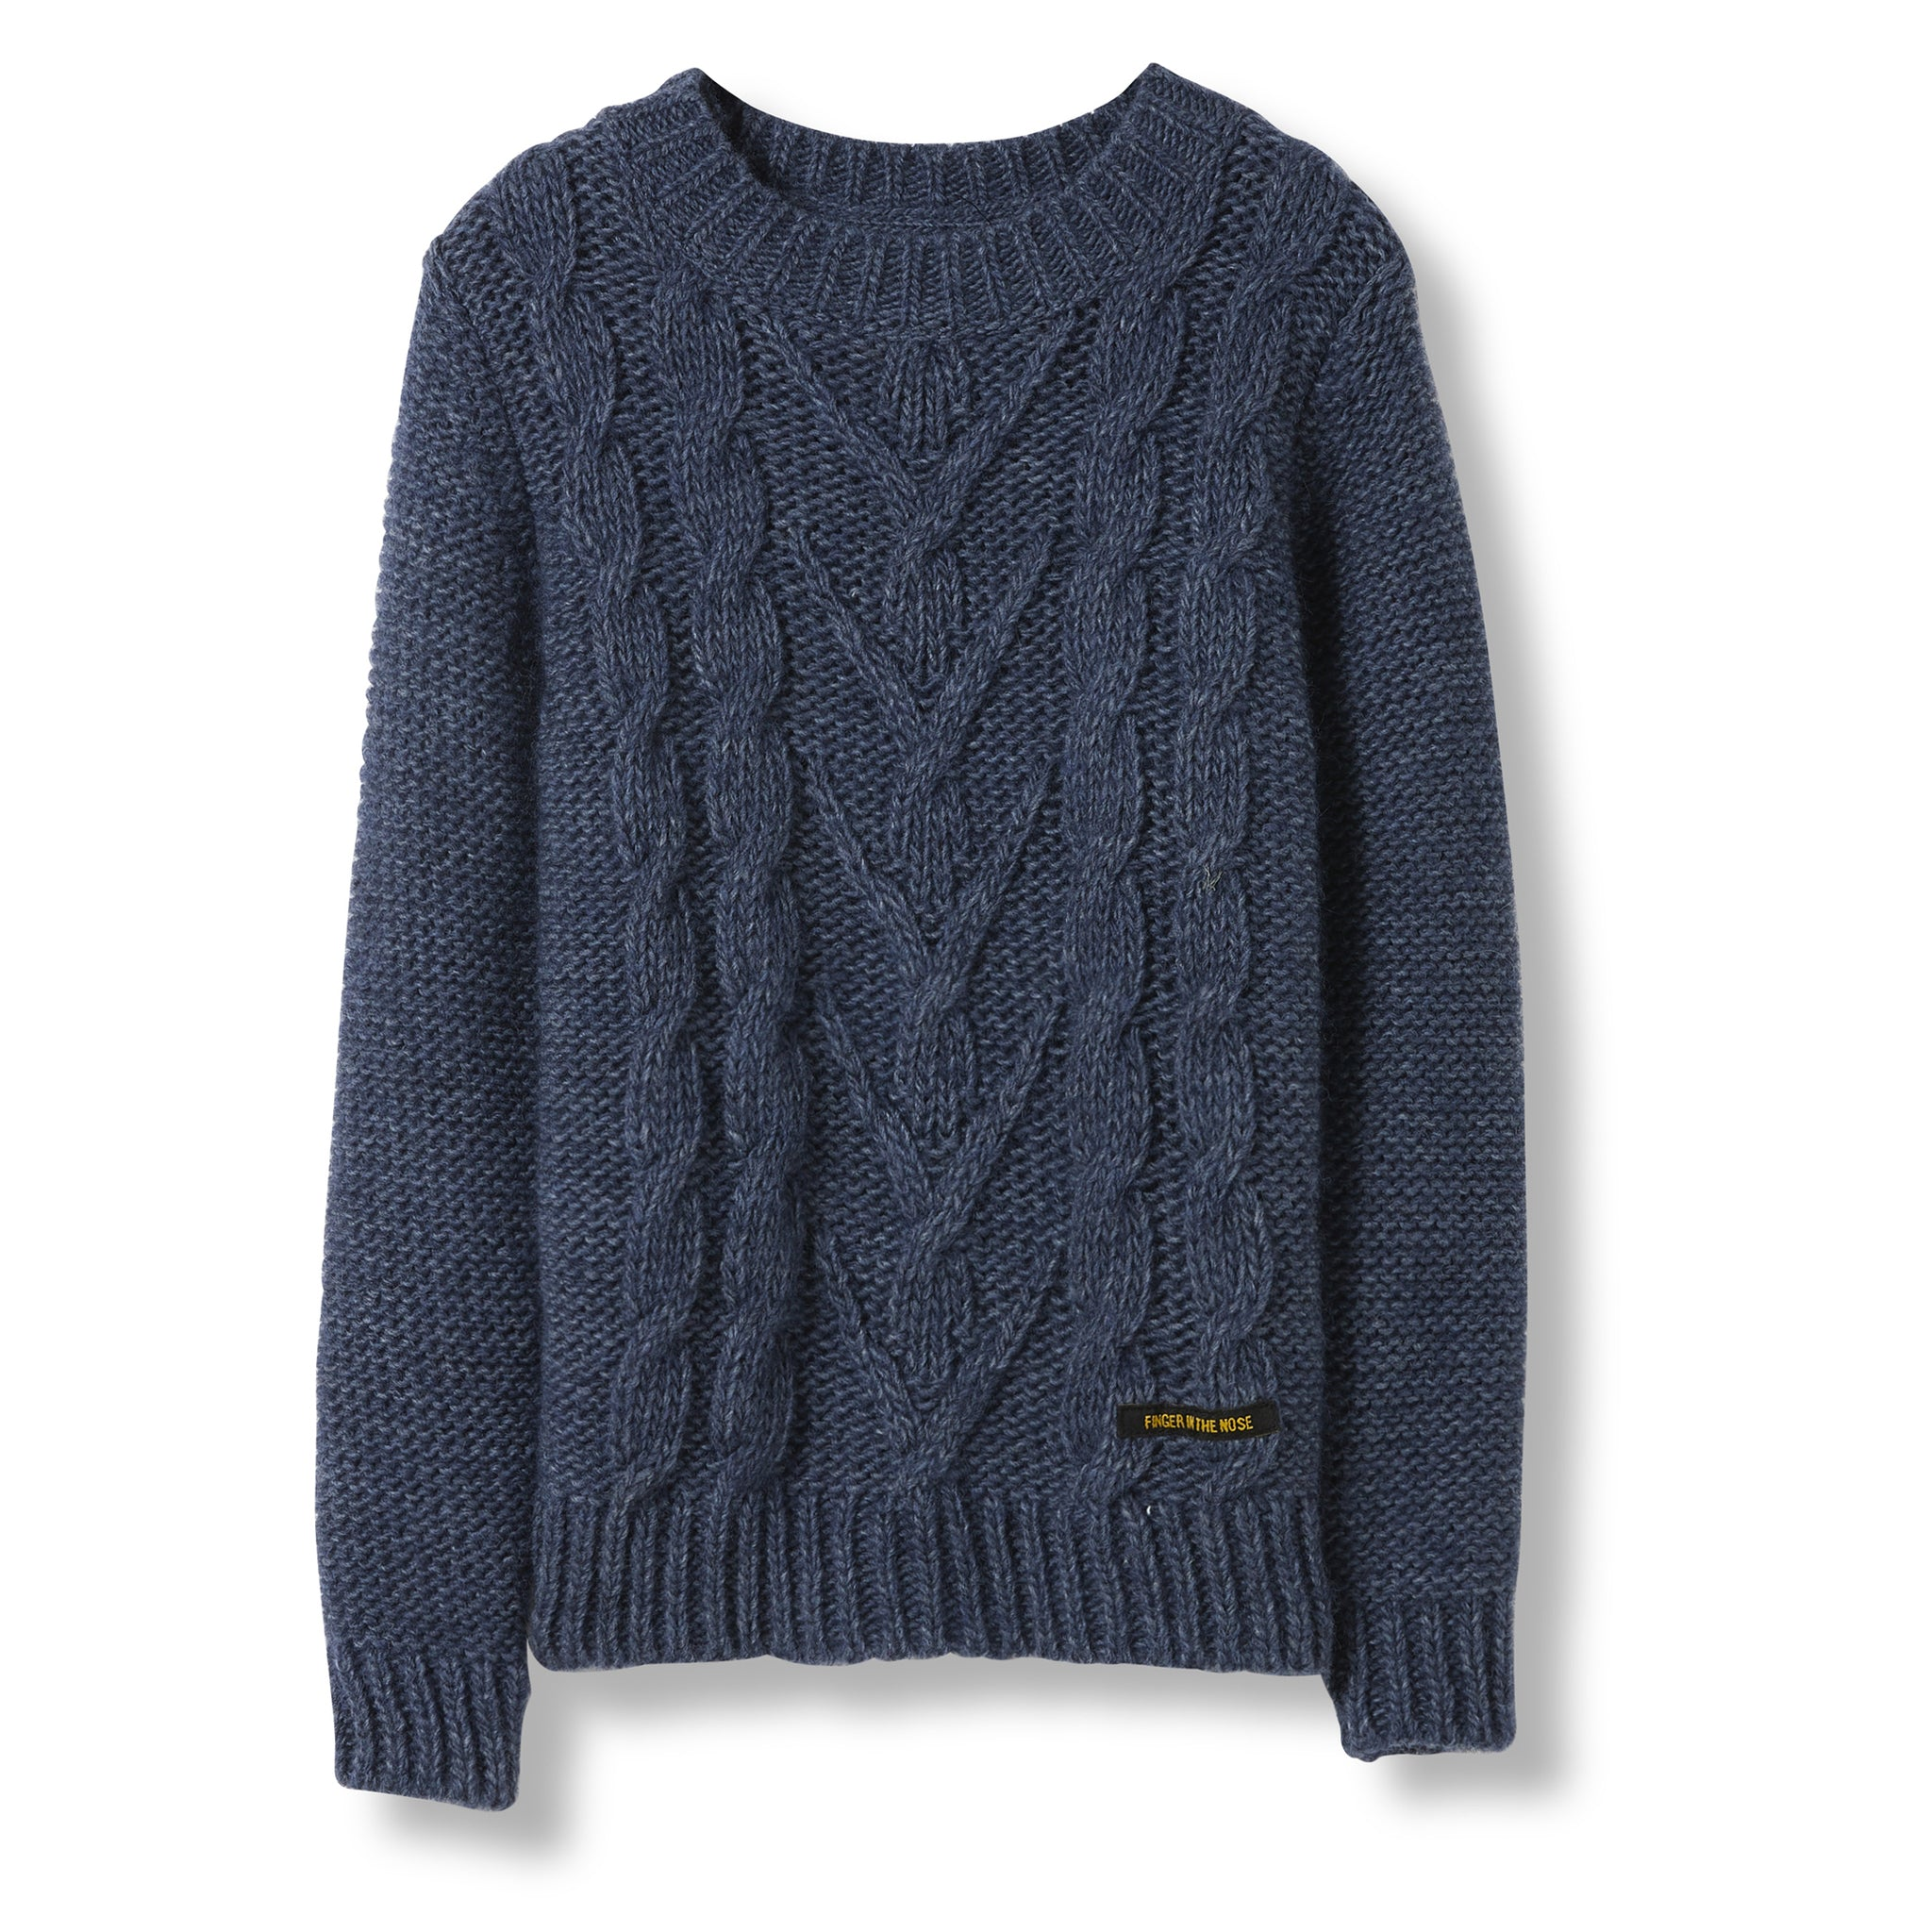 AVERY Indigo -  Heavy Knitted Round Neck Cable Jumper 1